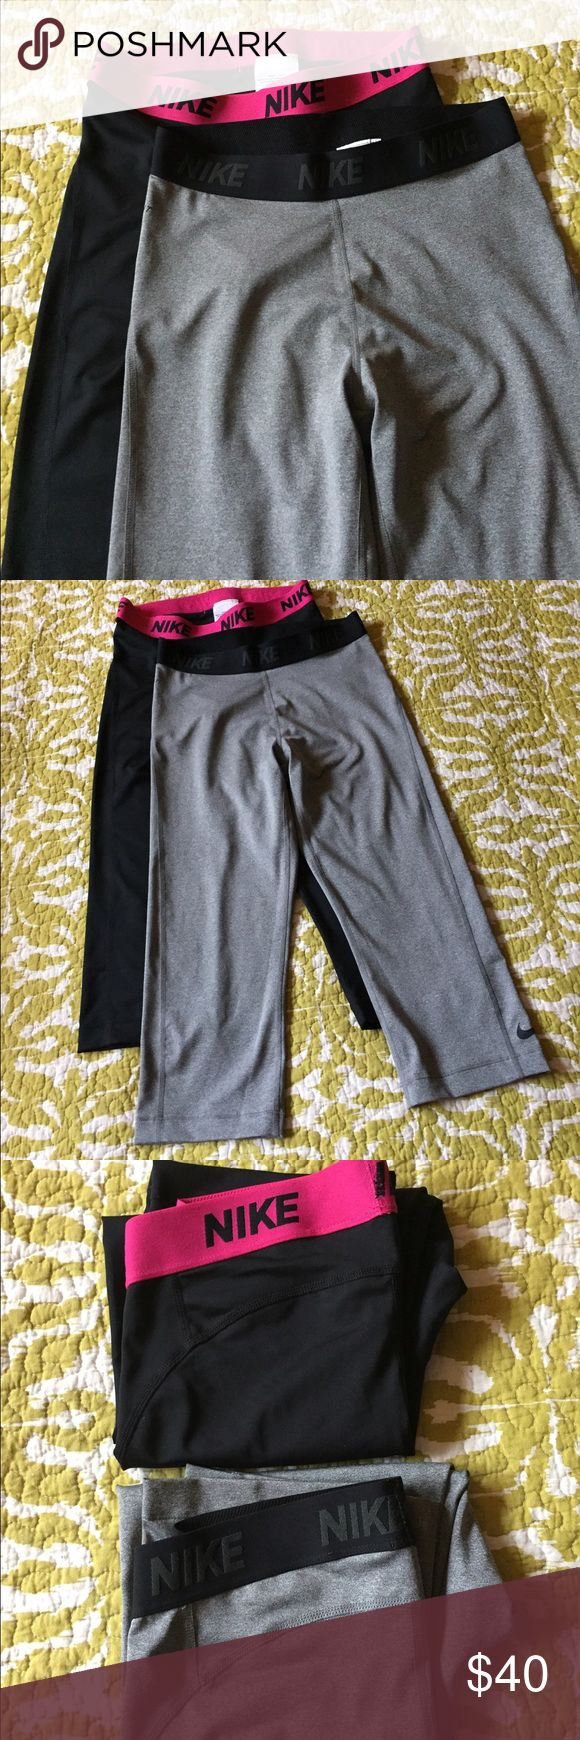 Nike leggings Nike Dry Fit leggings (2 pairs). One black with pink waist band one grey with a black waist band. Both size Medium and cropped style. Perfect condition. Only worn once. Nike Pants Leggings